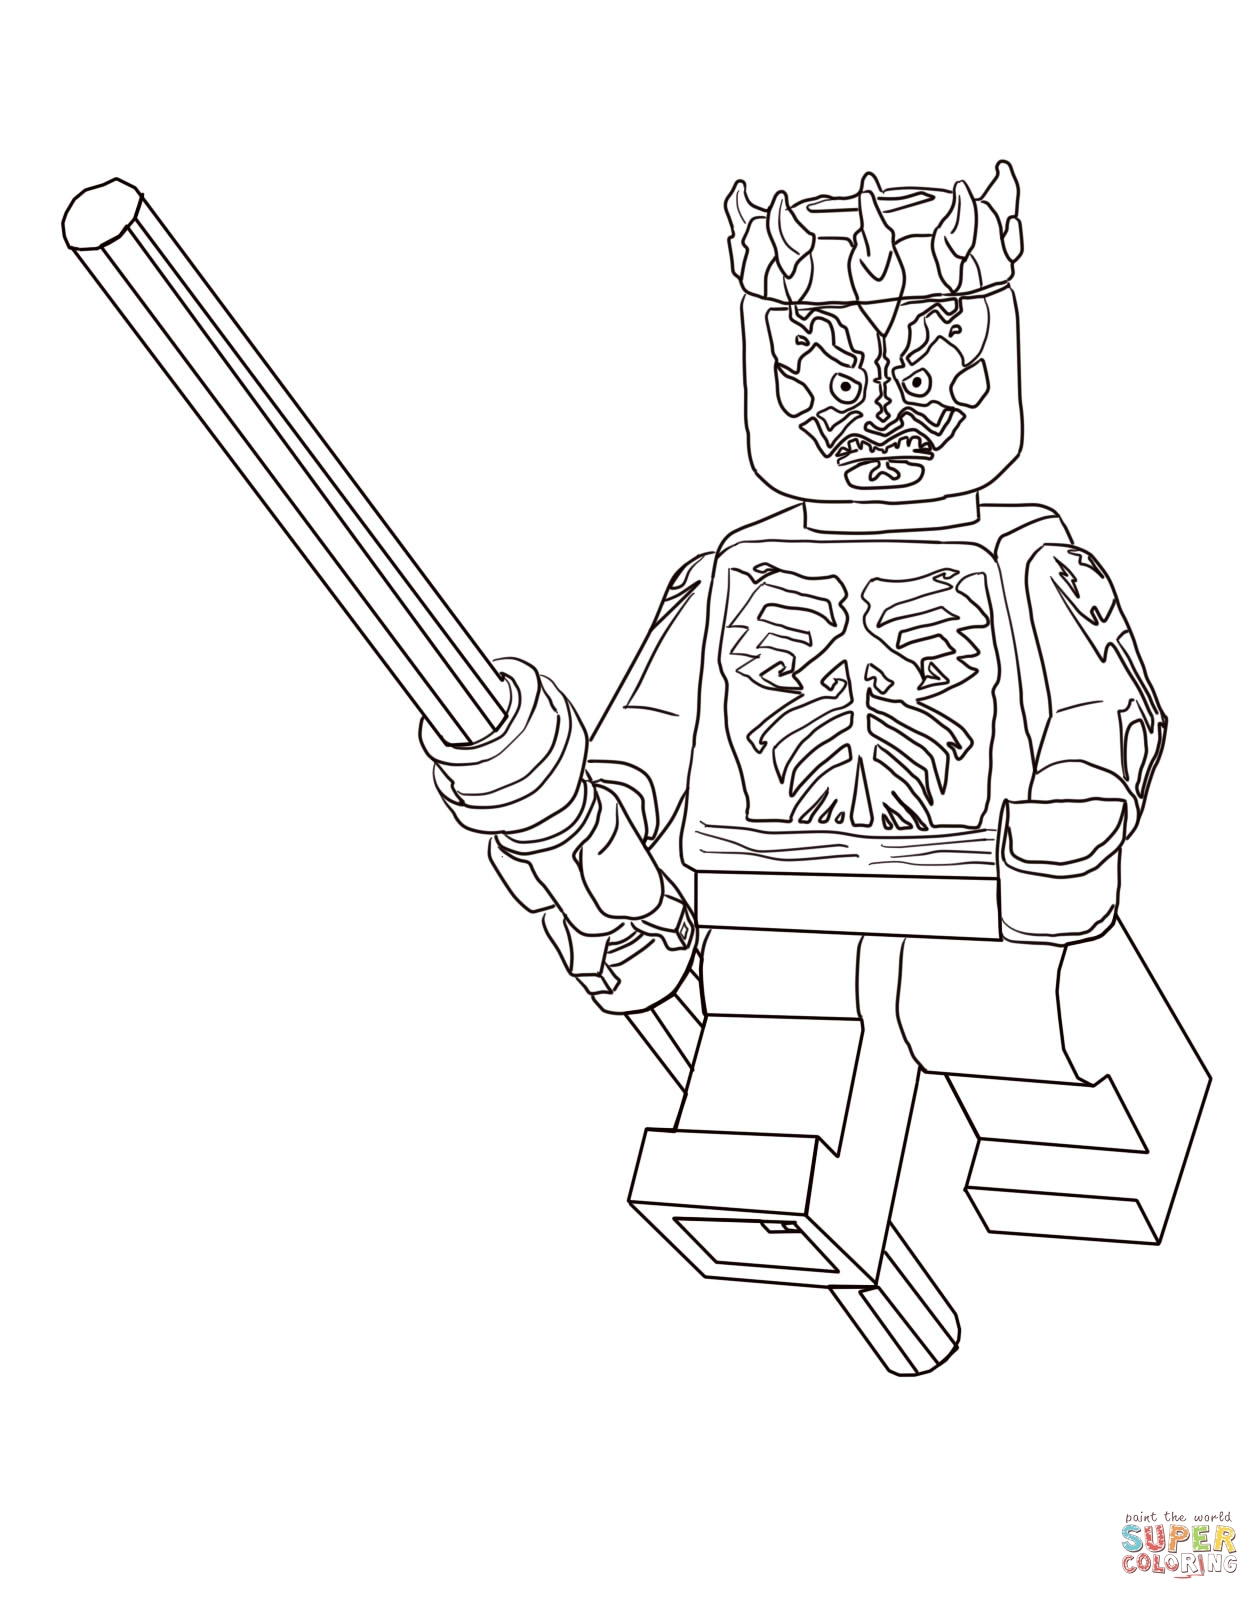 Printable Darth Vader Coloring Pages At Getdrawings Com Free For